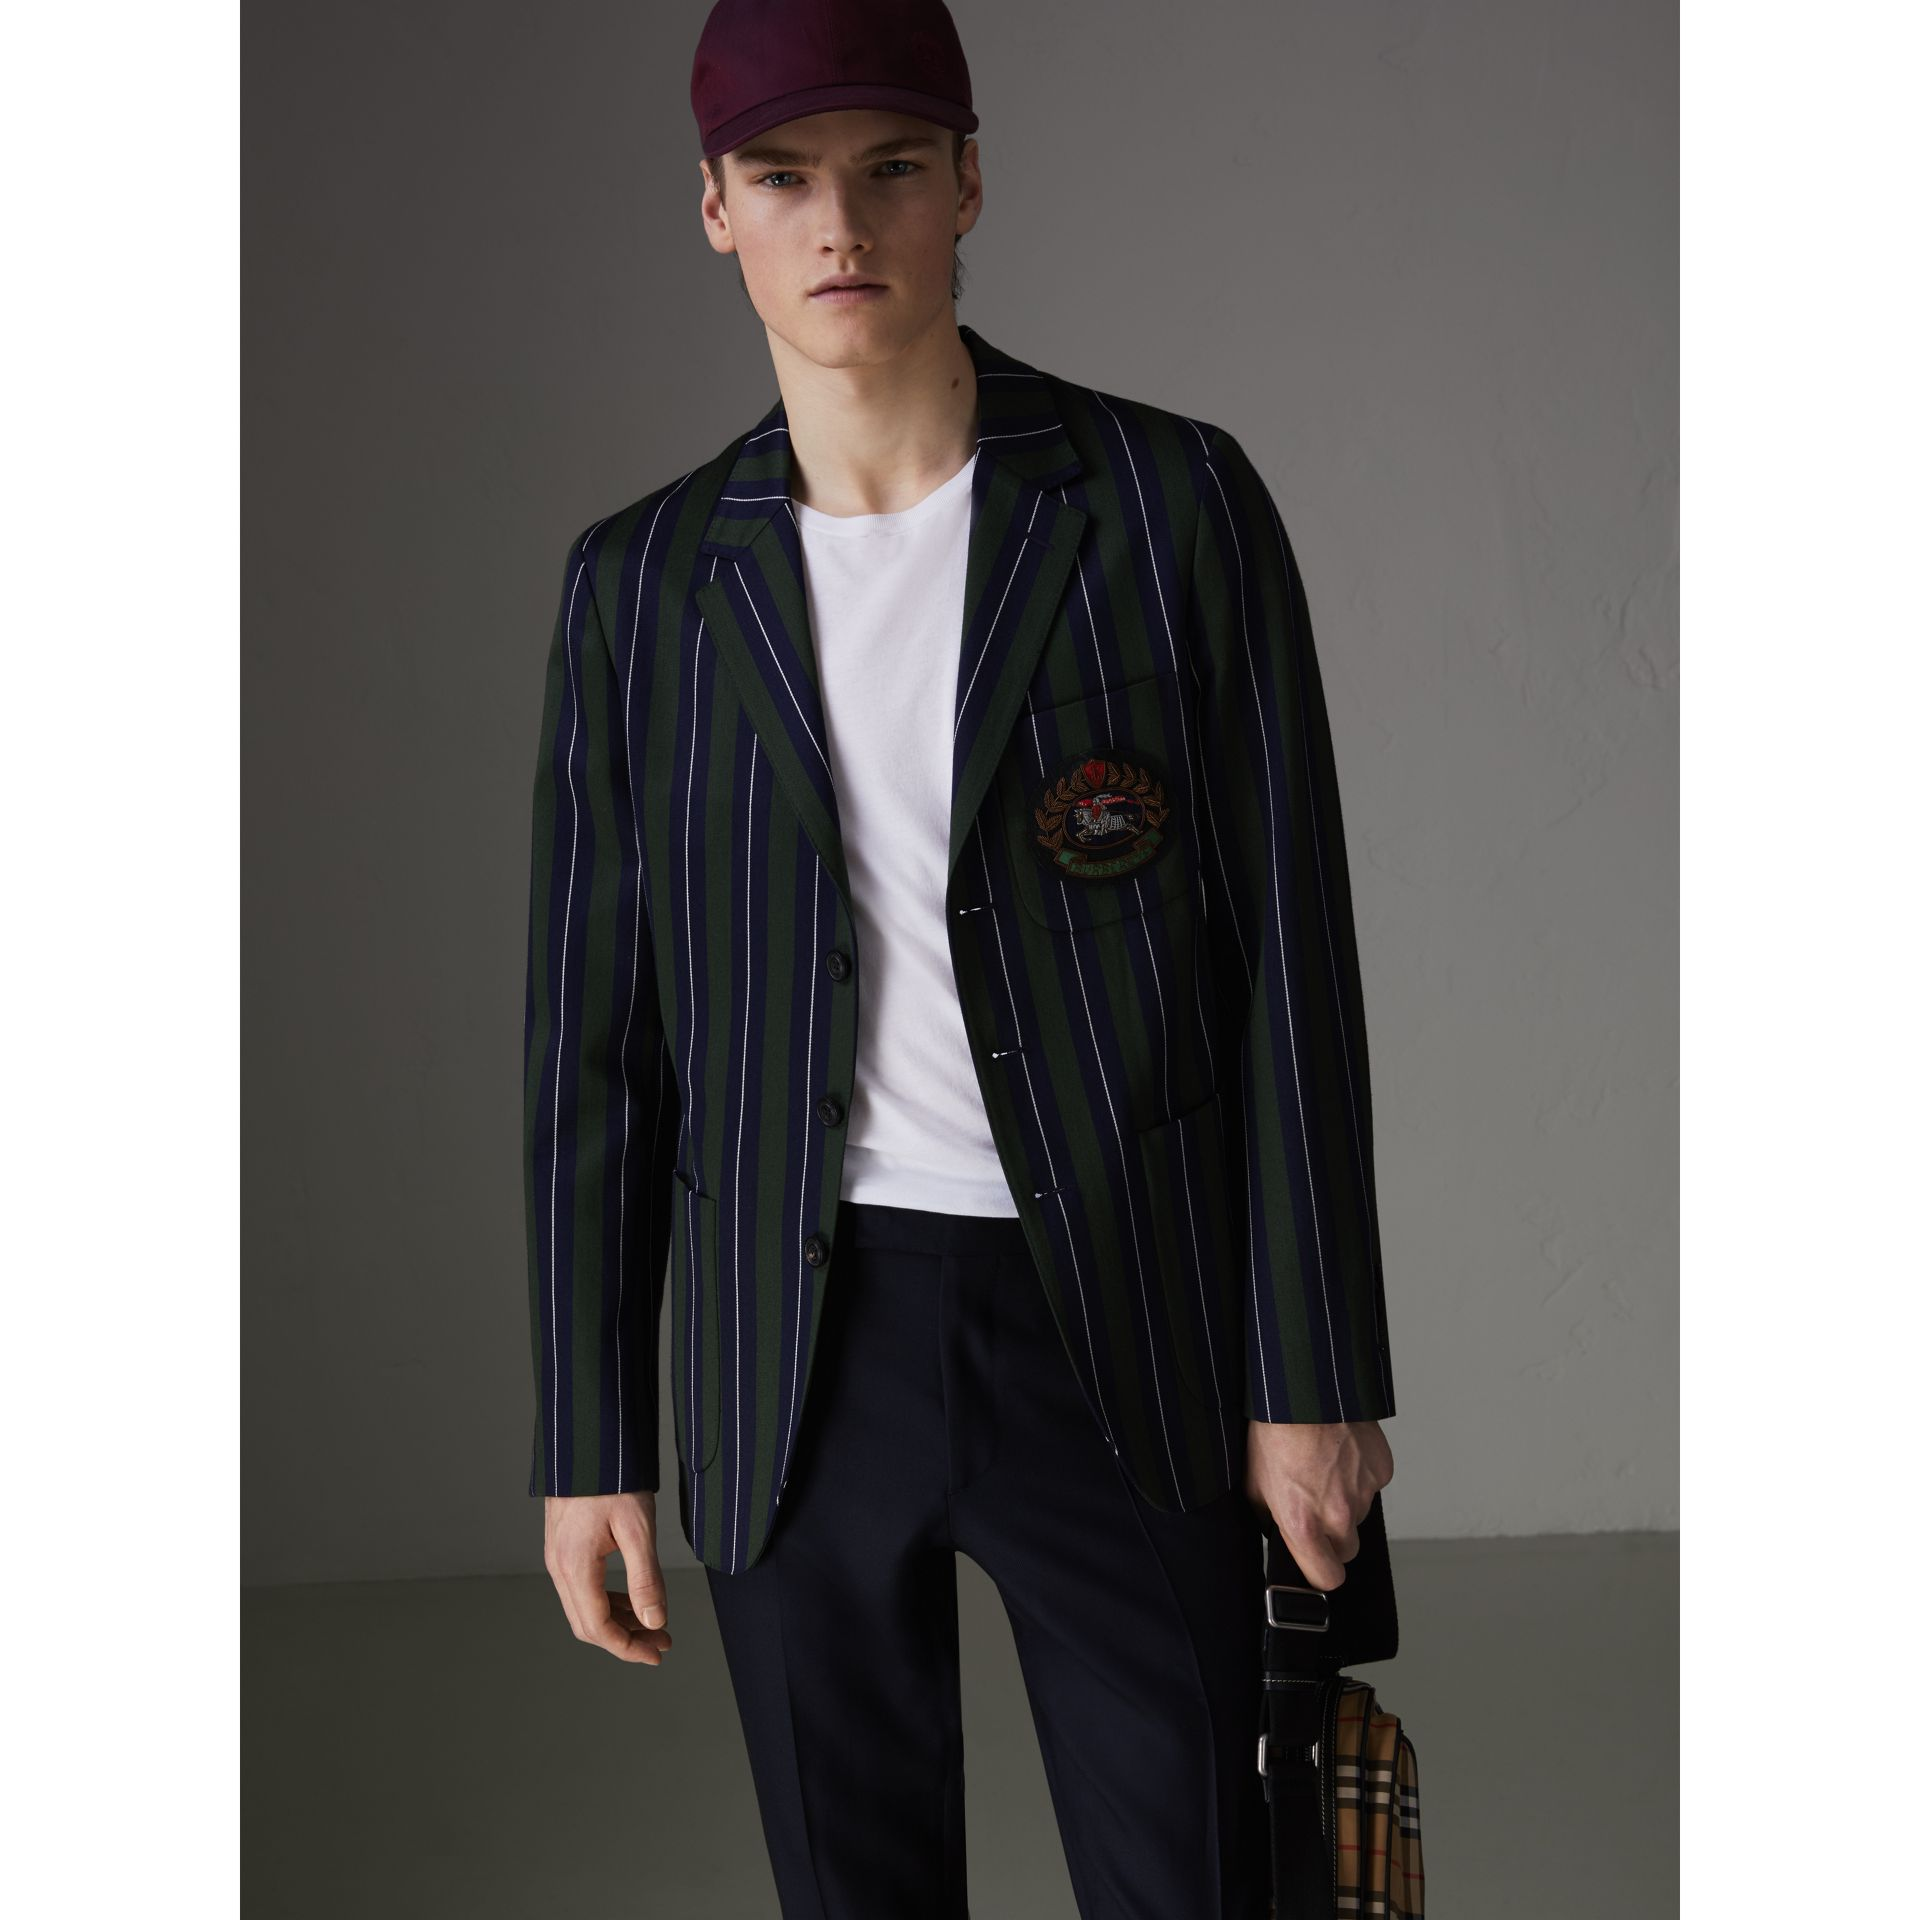 Archive Crest Striped Wool Cotton Tailored Jacket in Dark Forest Green - Men | Burberry United States - gallery image 6